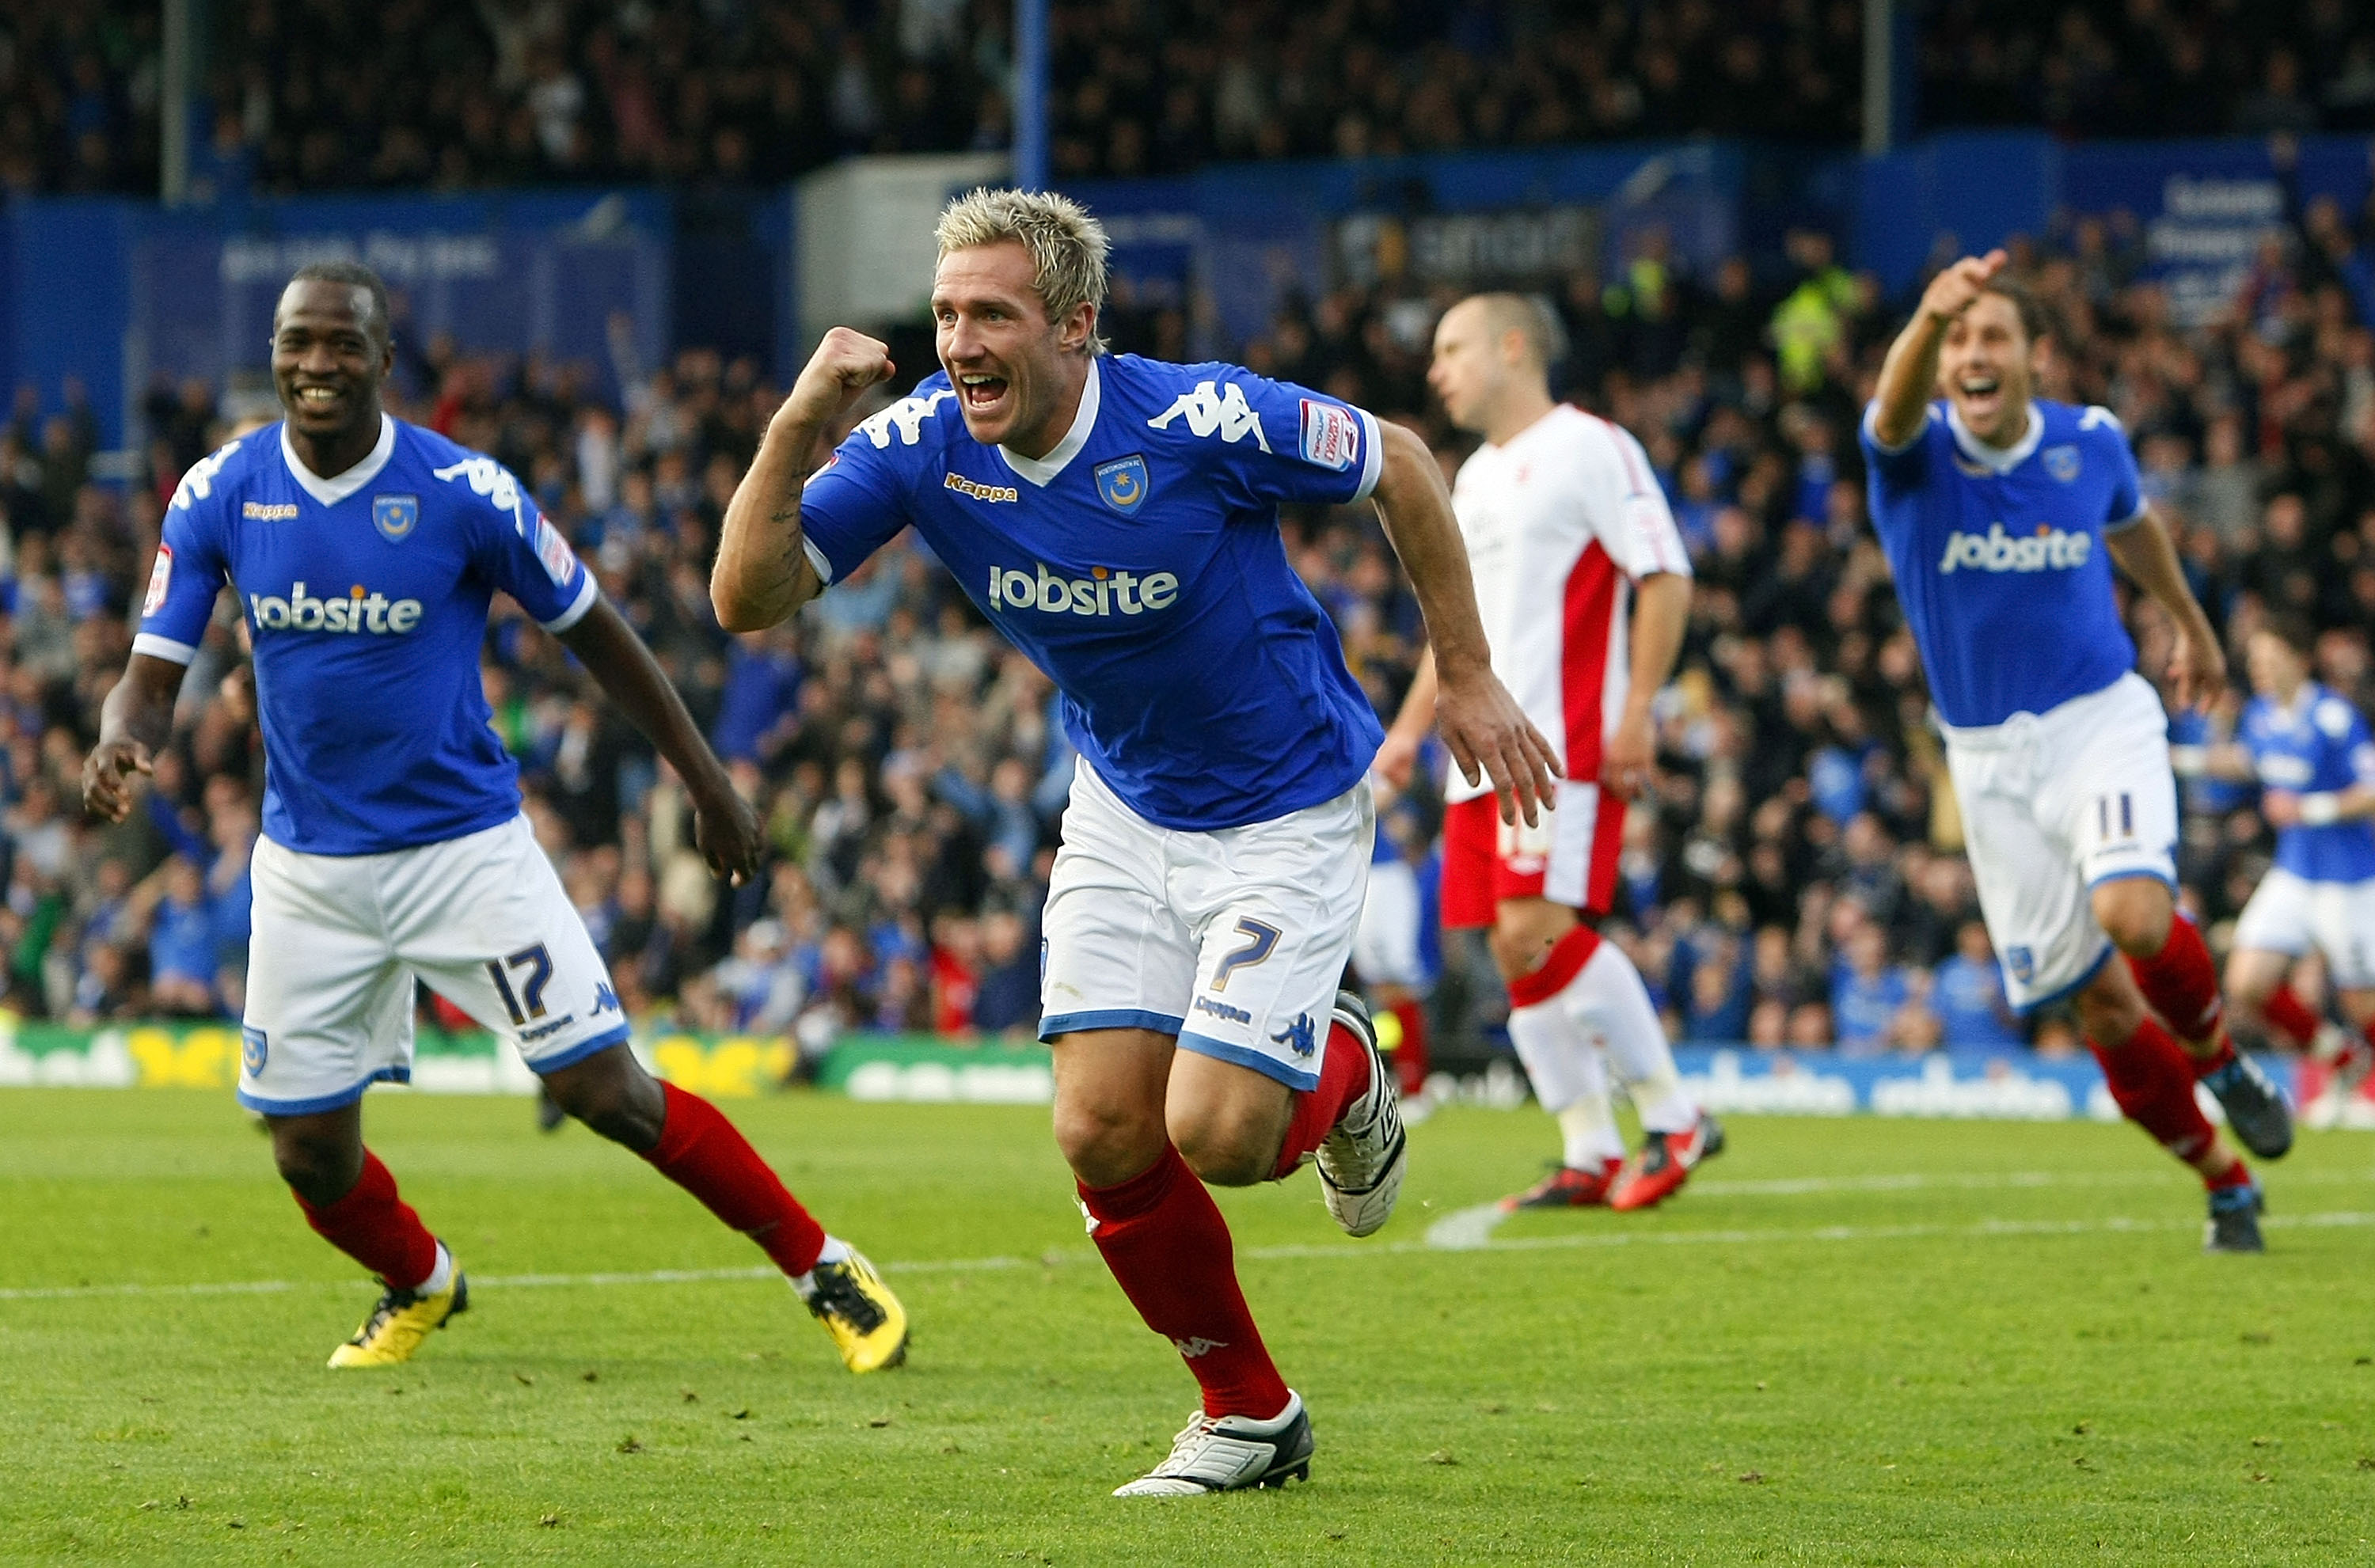 PORTSMOUTH, ENGLAND - OCTOBER 30: Liam Lawrence of Portsmouth celebrates his goal during the npower Championship match between Portsmouth and Nottingham Forest at Fratton Park on October 30, 2010 in Portsmouth, England. (Photo by Tom Dulat/Getty Images)